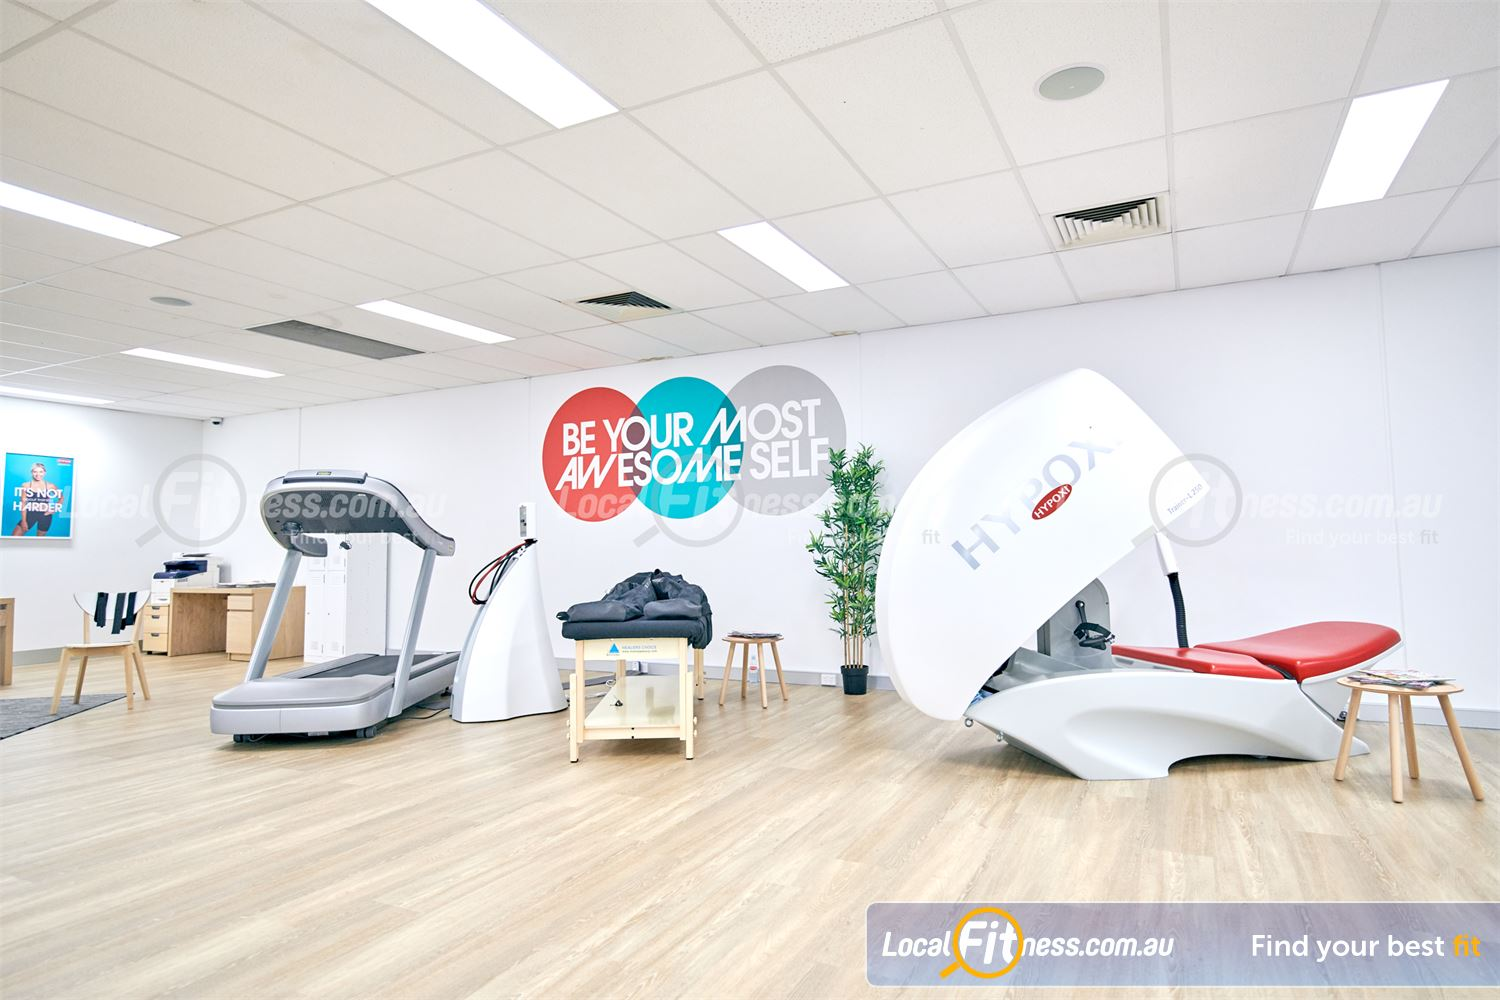 Fitness First Near Notting Hill Burn fat around your hips, bottom, stomach and thighs – with Glen Waverley Hypoxi.